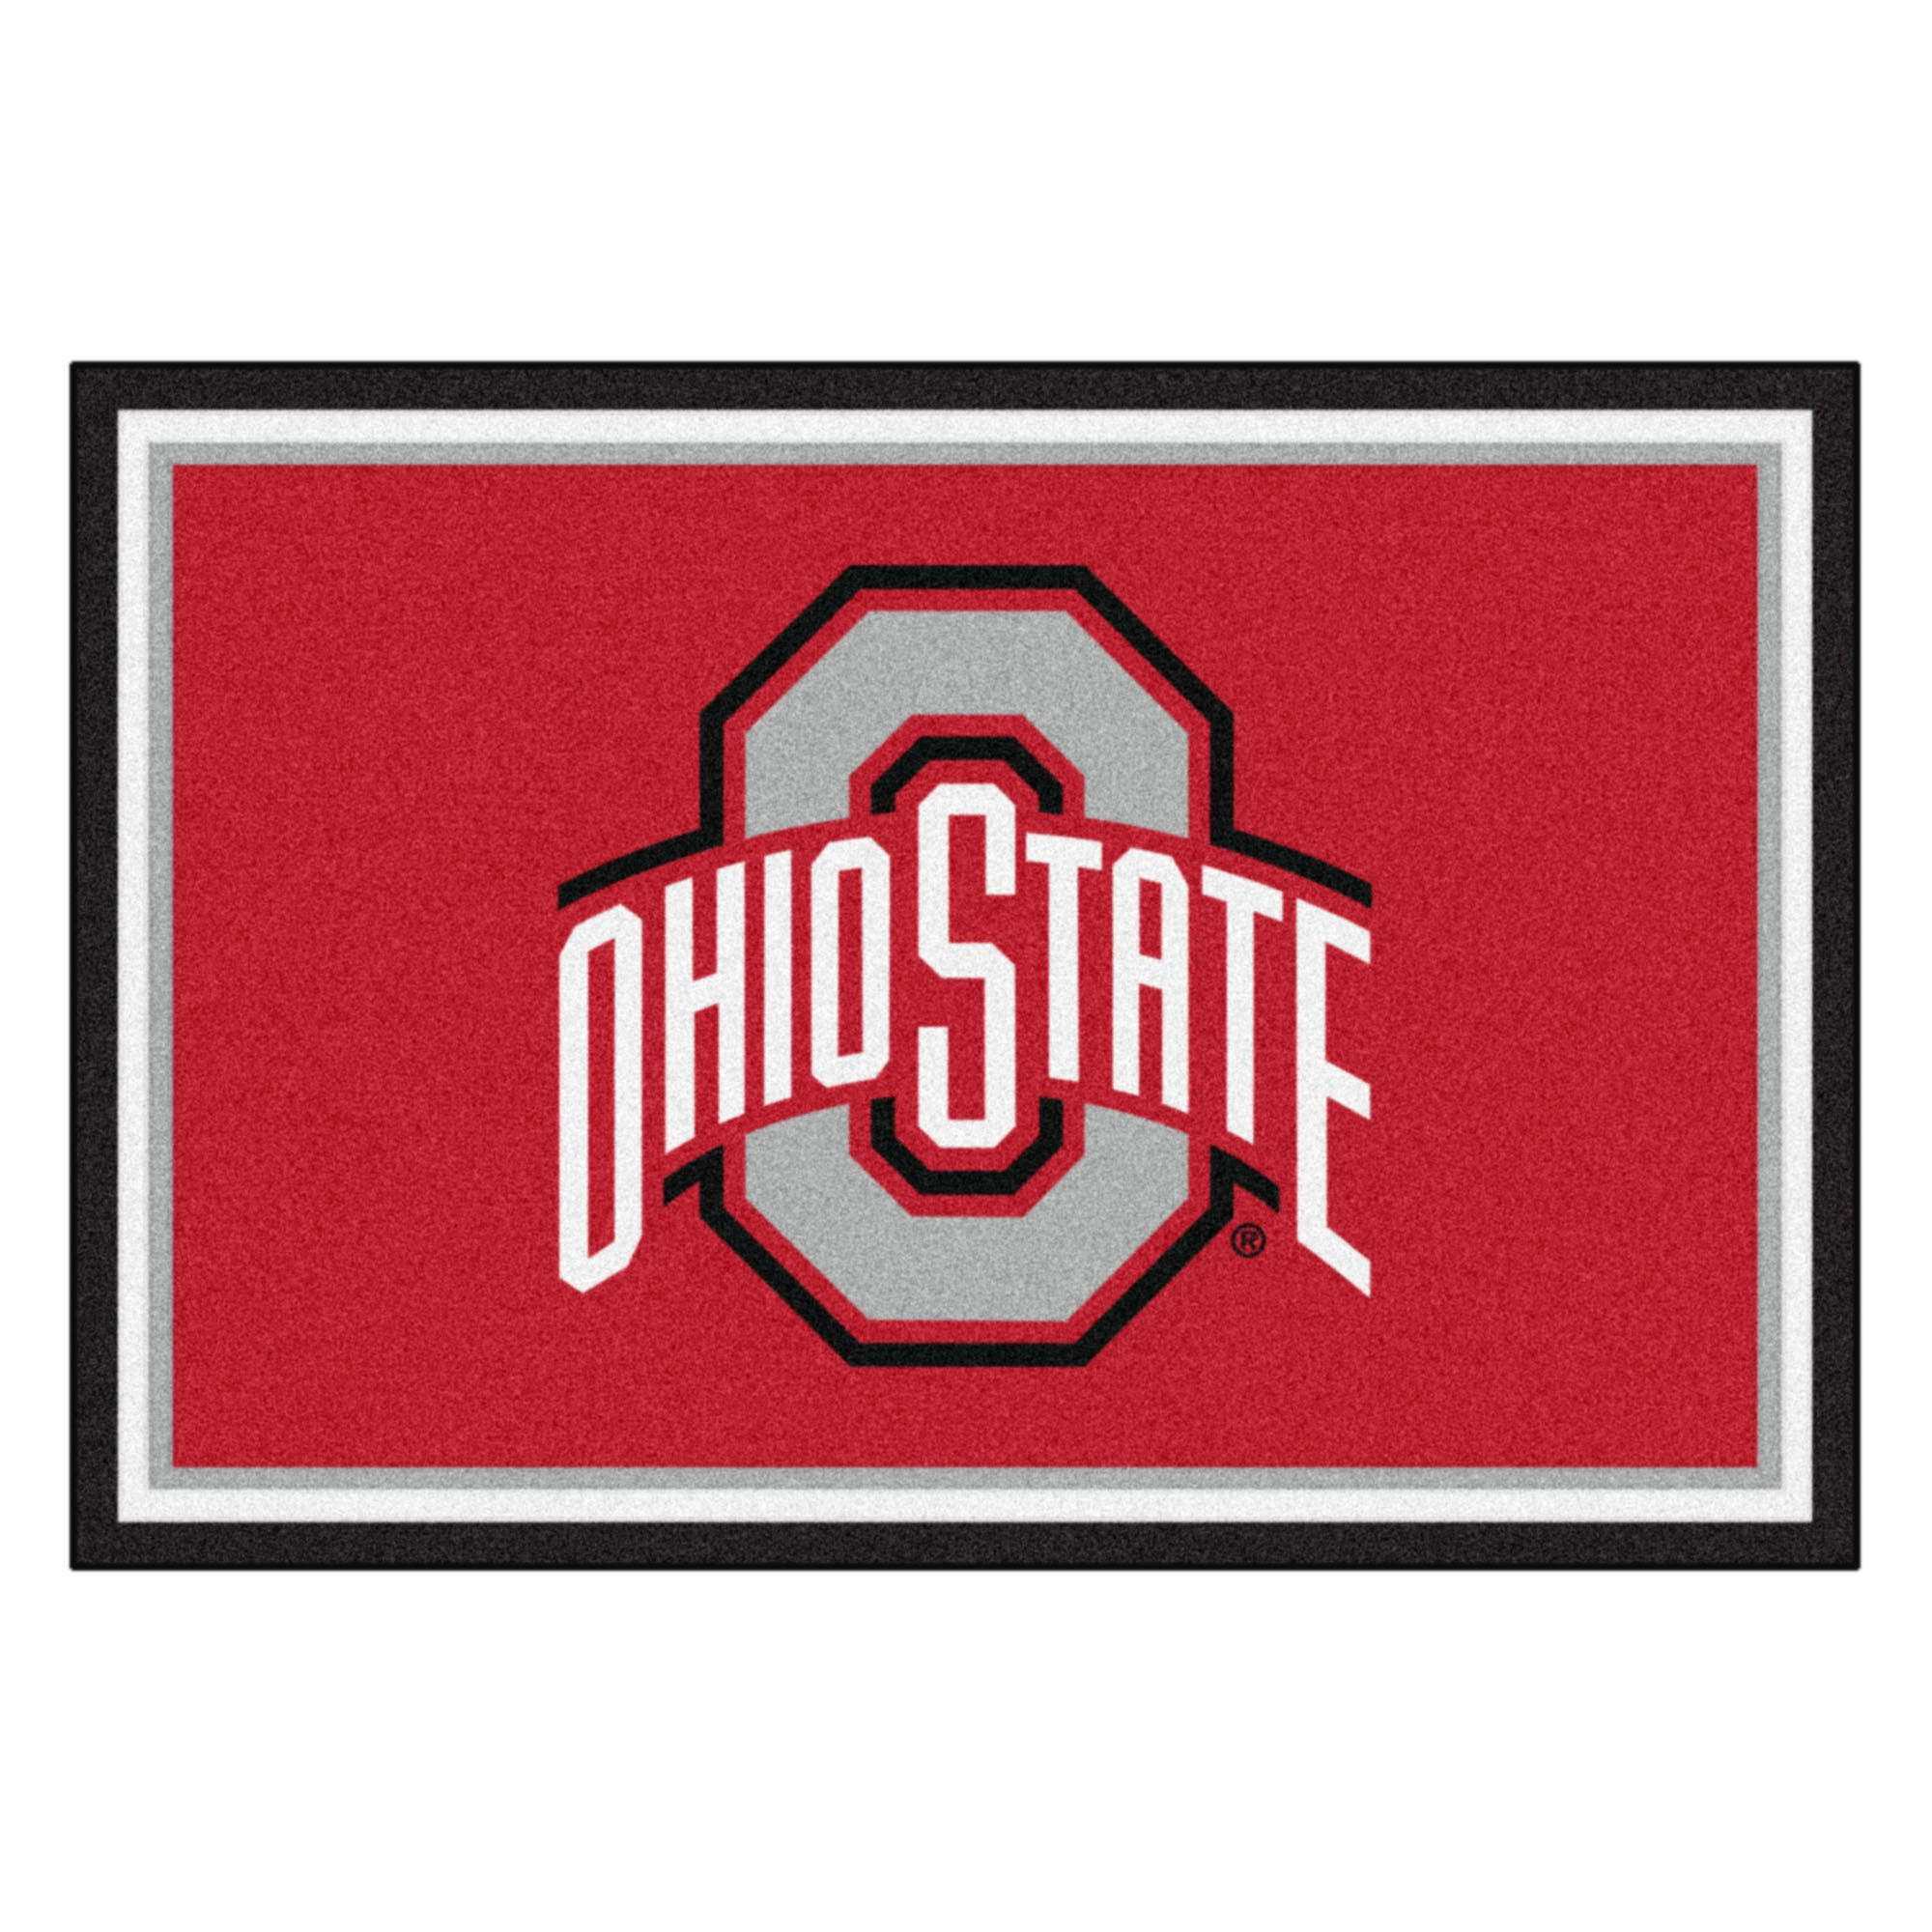 FANMATS NCAA Ohio State University Buckeyes Nylon Face 5X8 Plush Rug by FANMATS (Image #1)